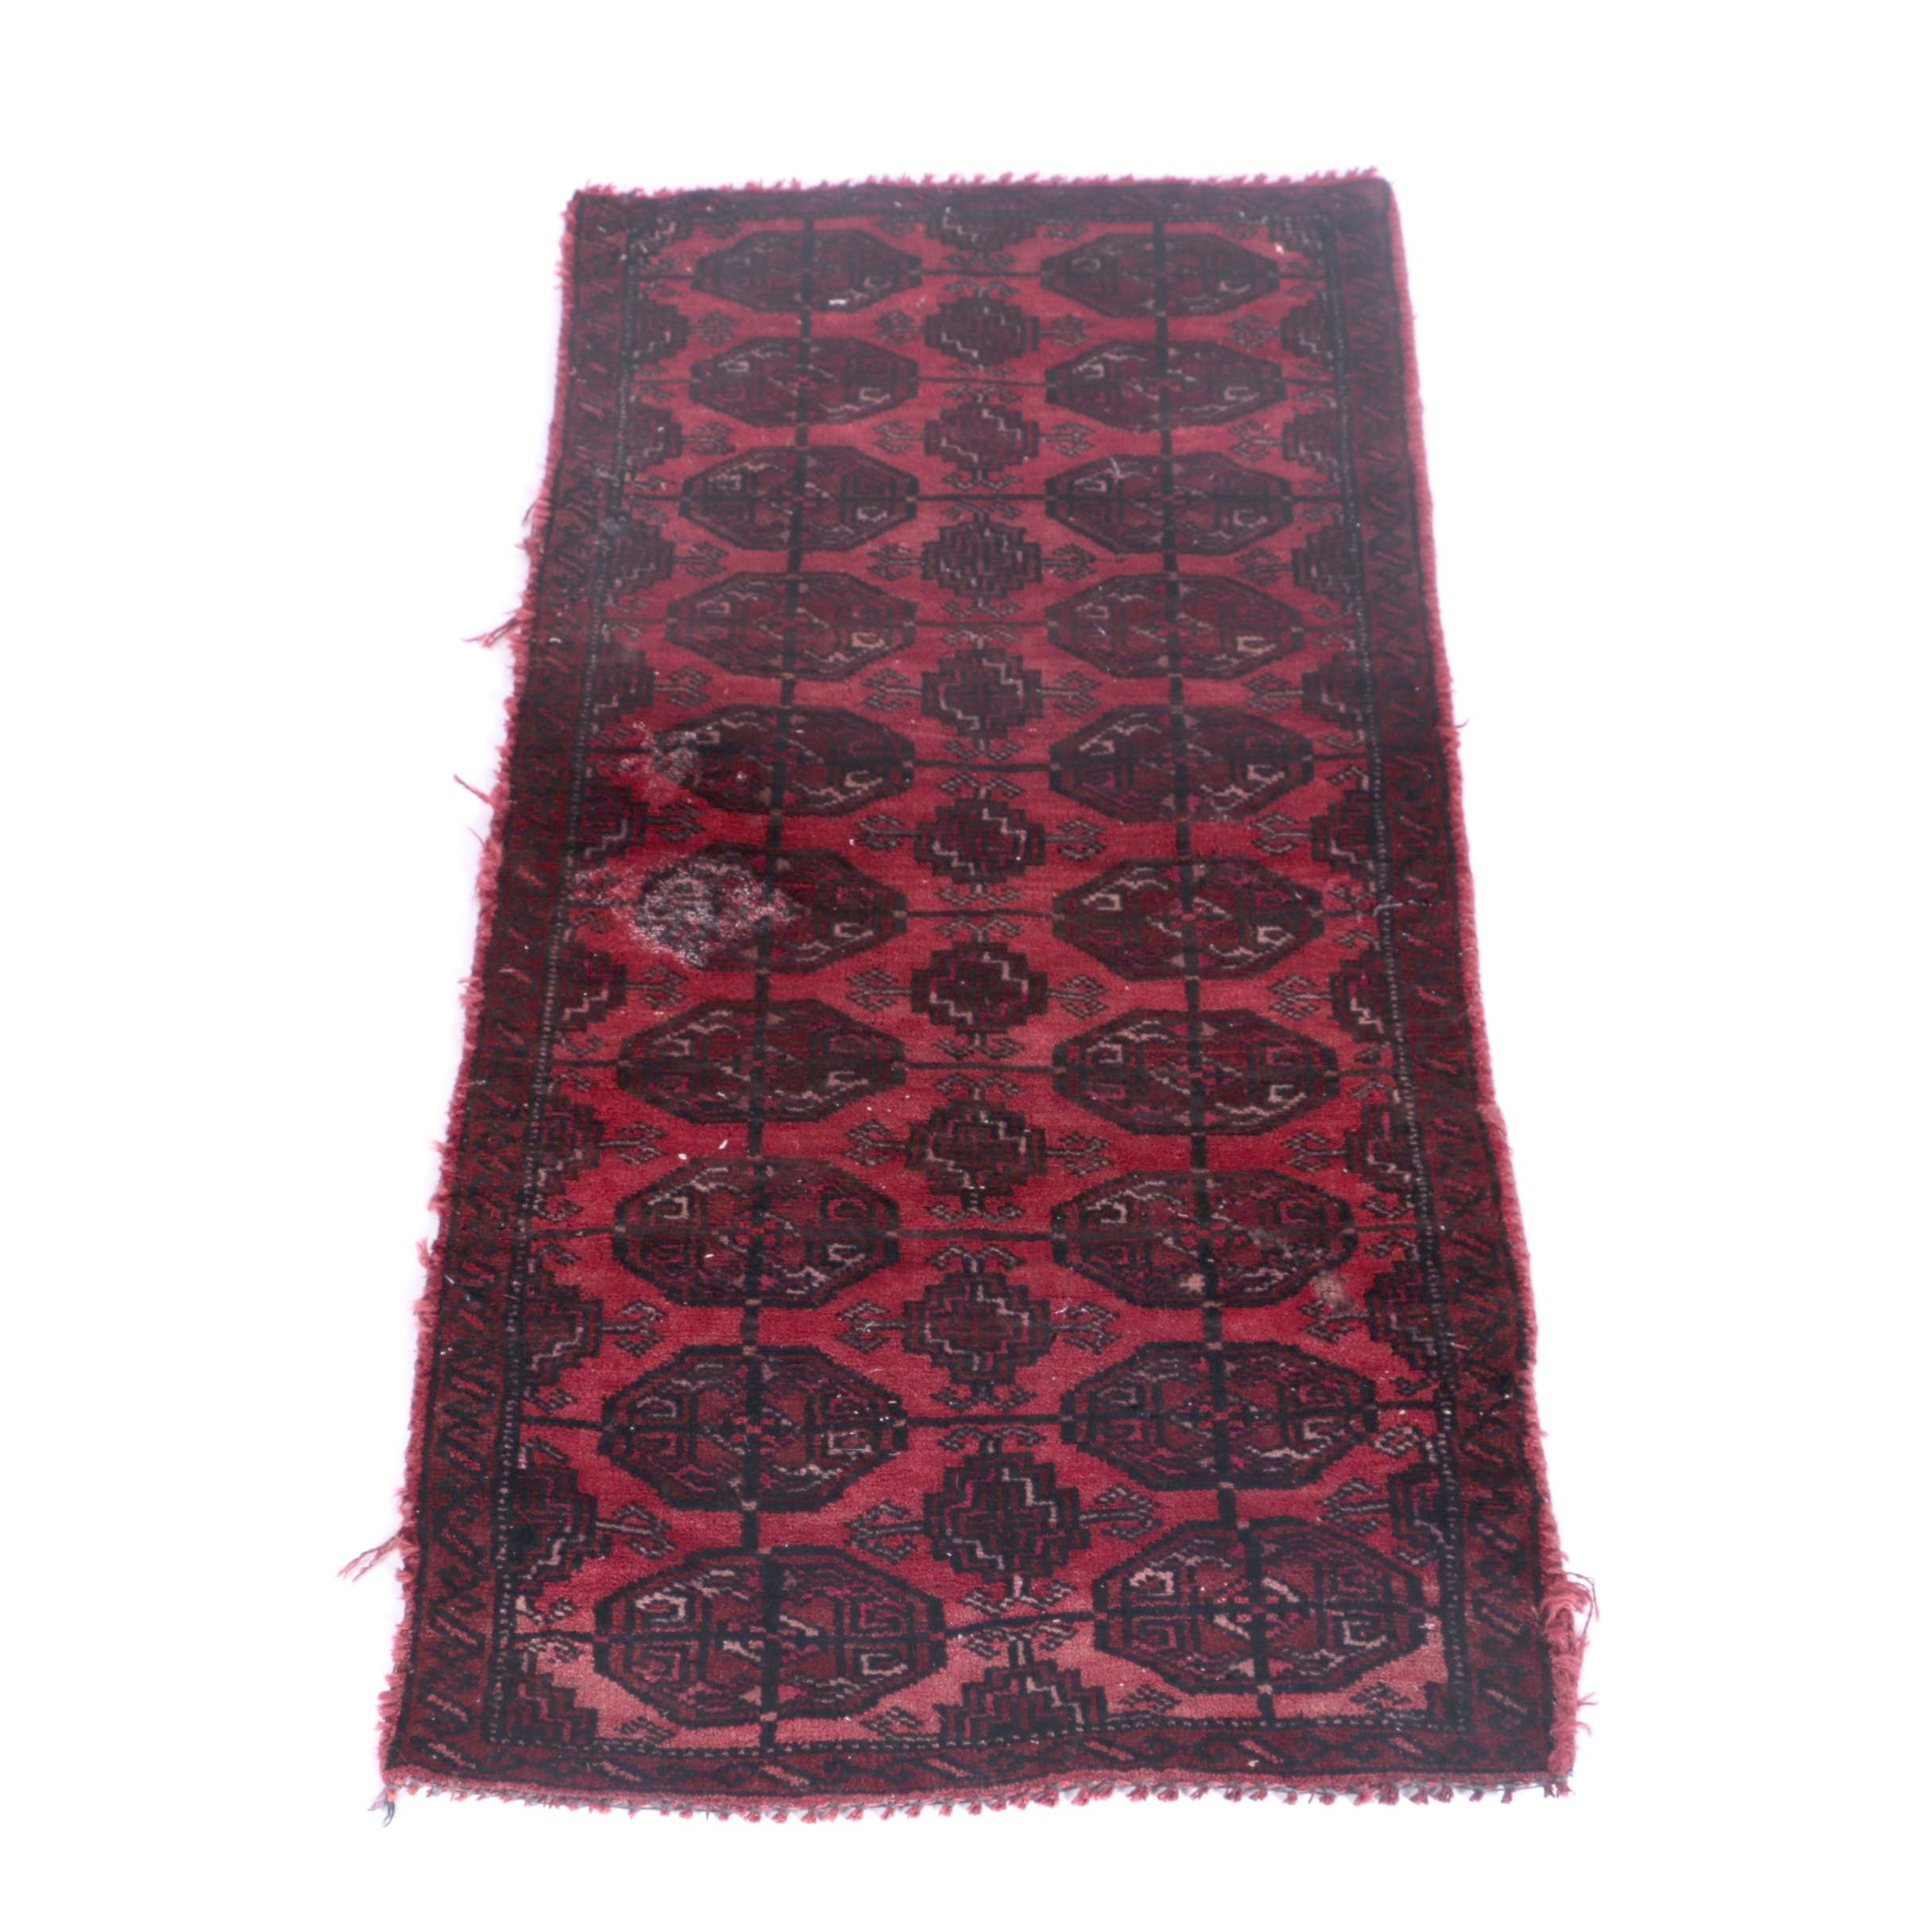 Semi-Antique Hand-Knotted Bokhara Wool Carpet Runner